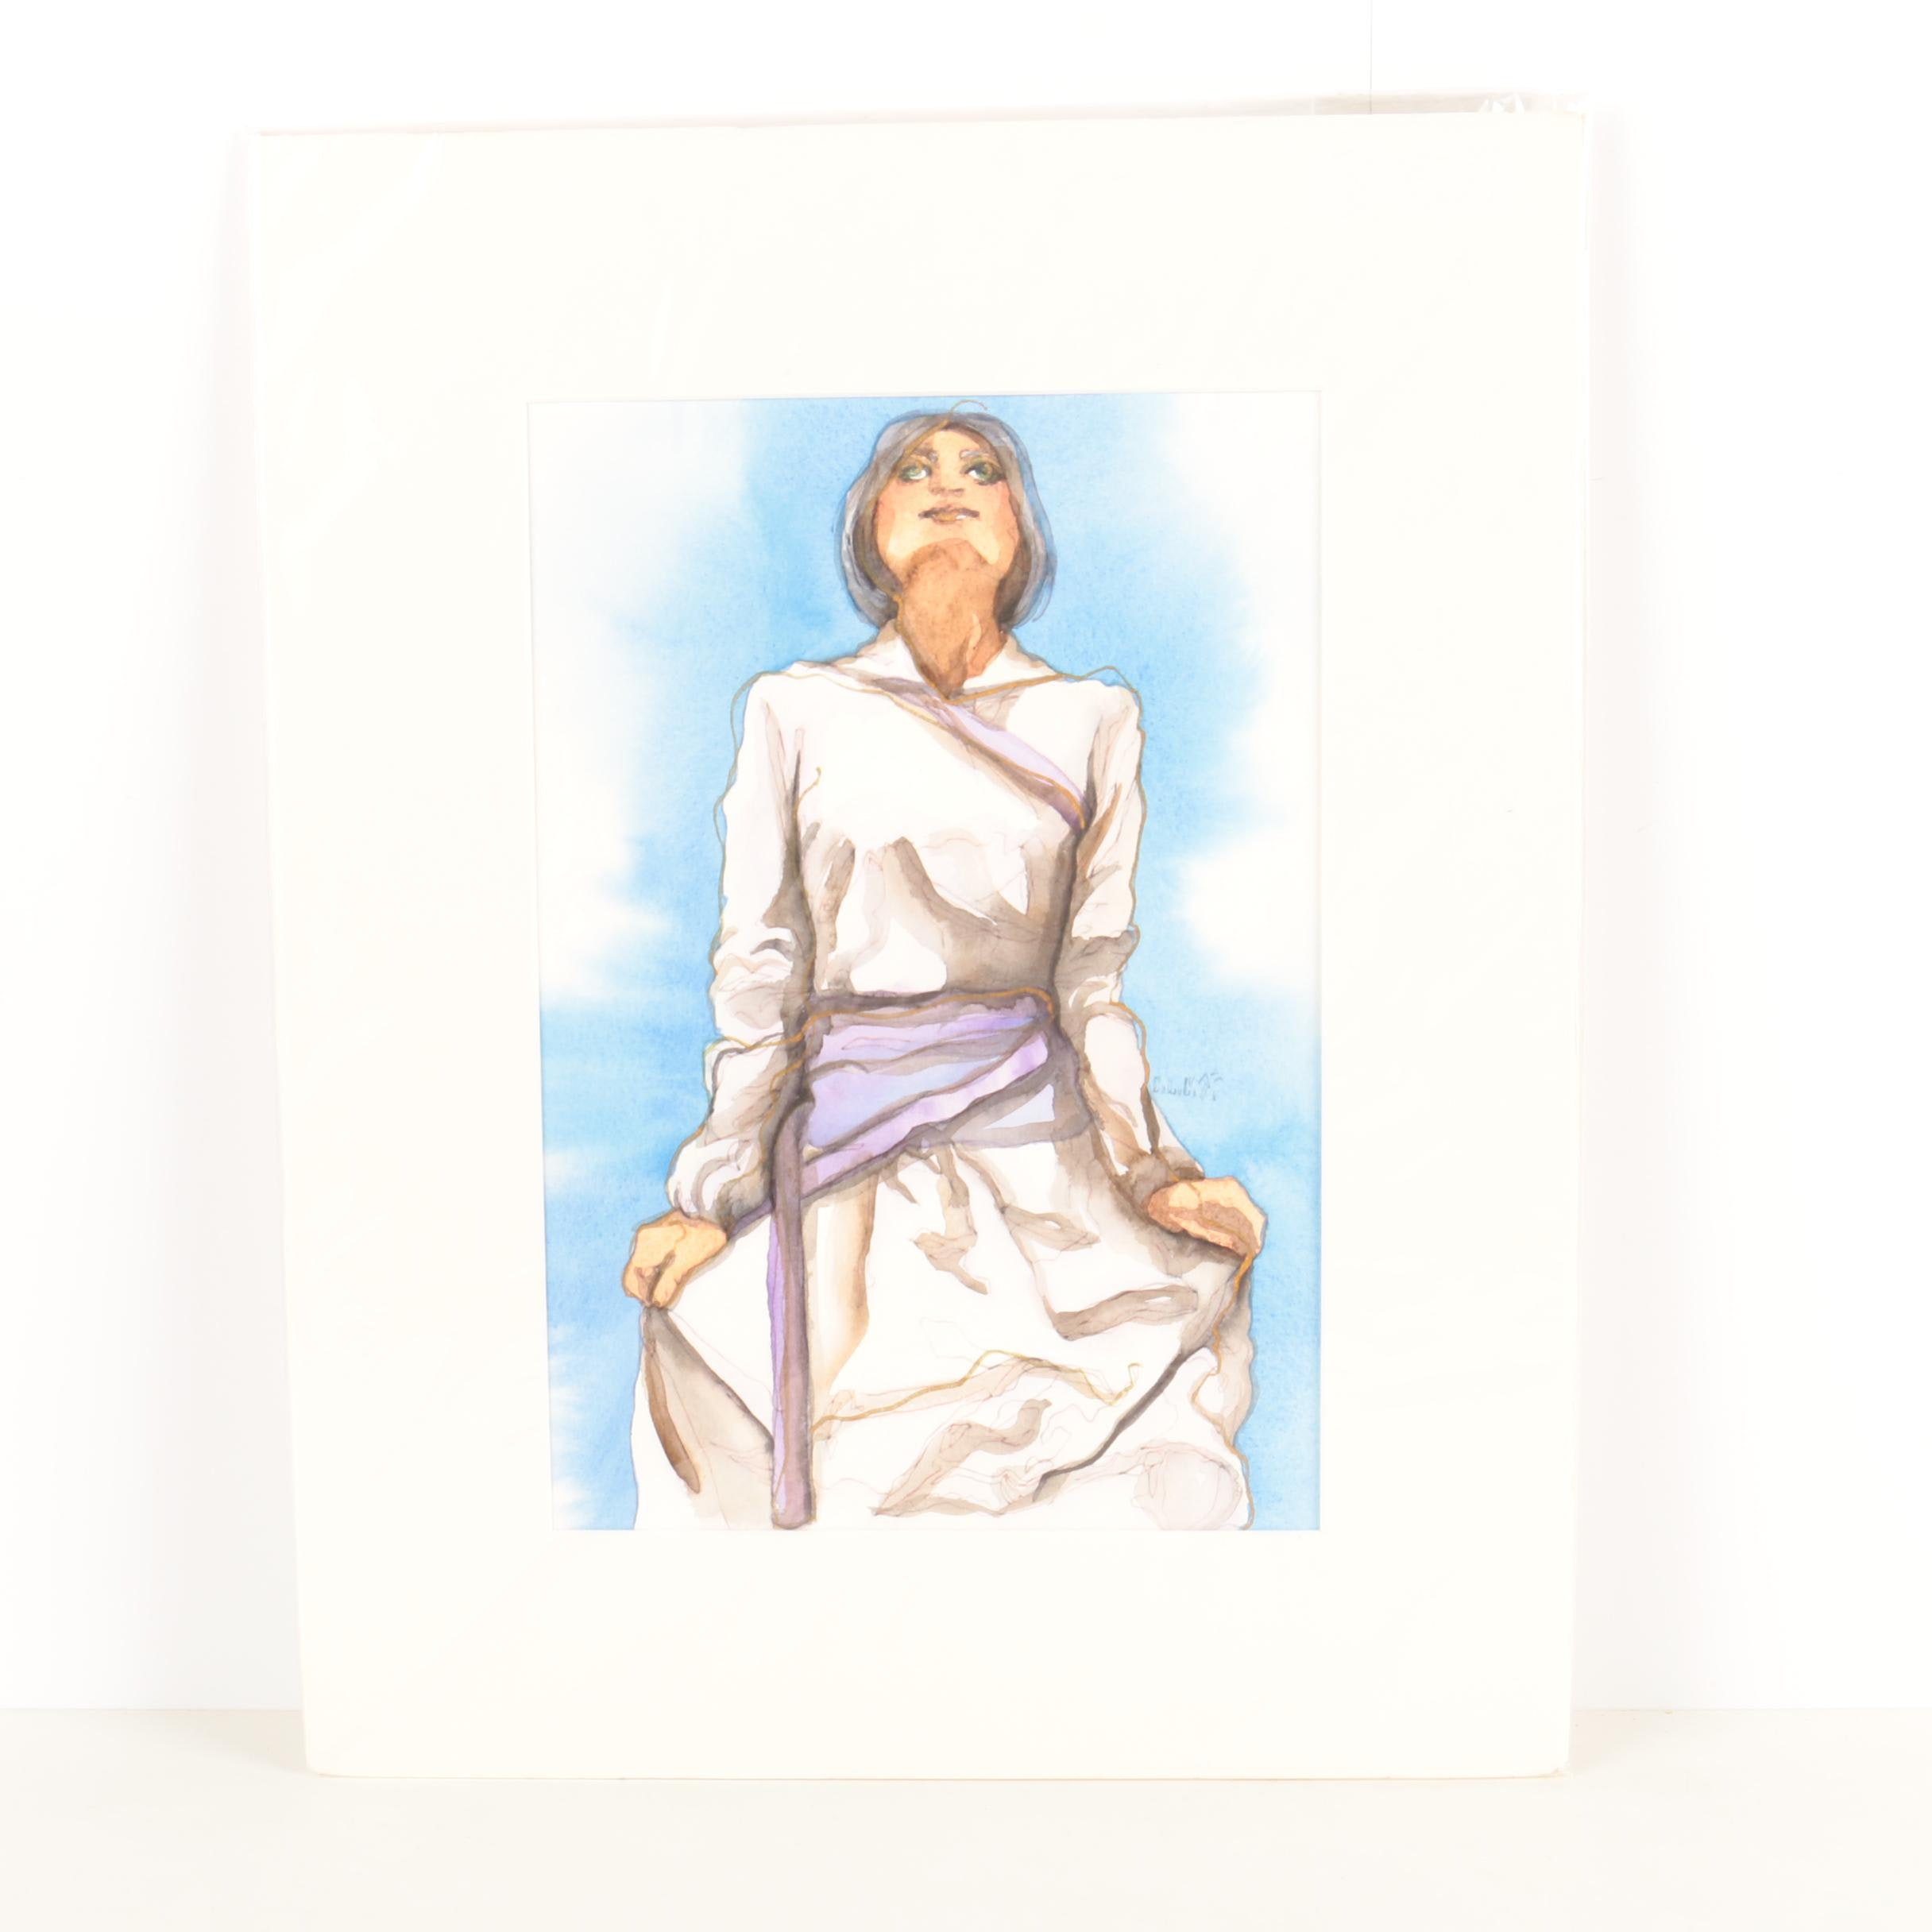 Mixed Media Painting on Paper of Woman in White and Purple Dress